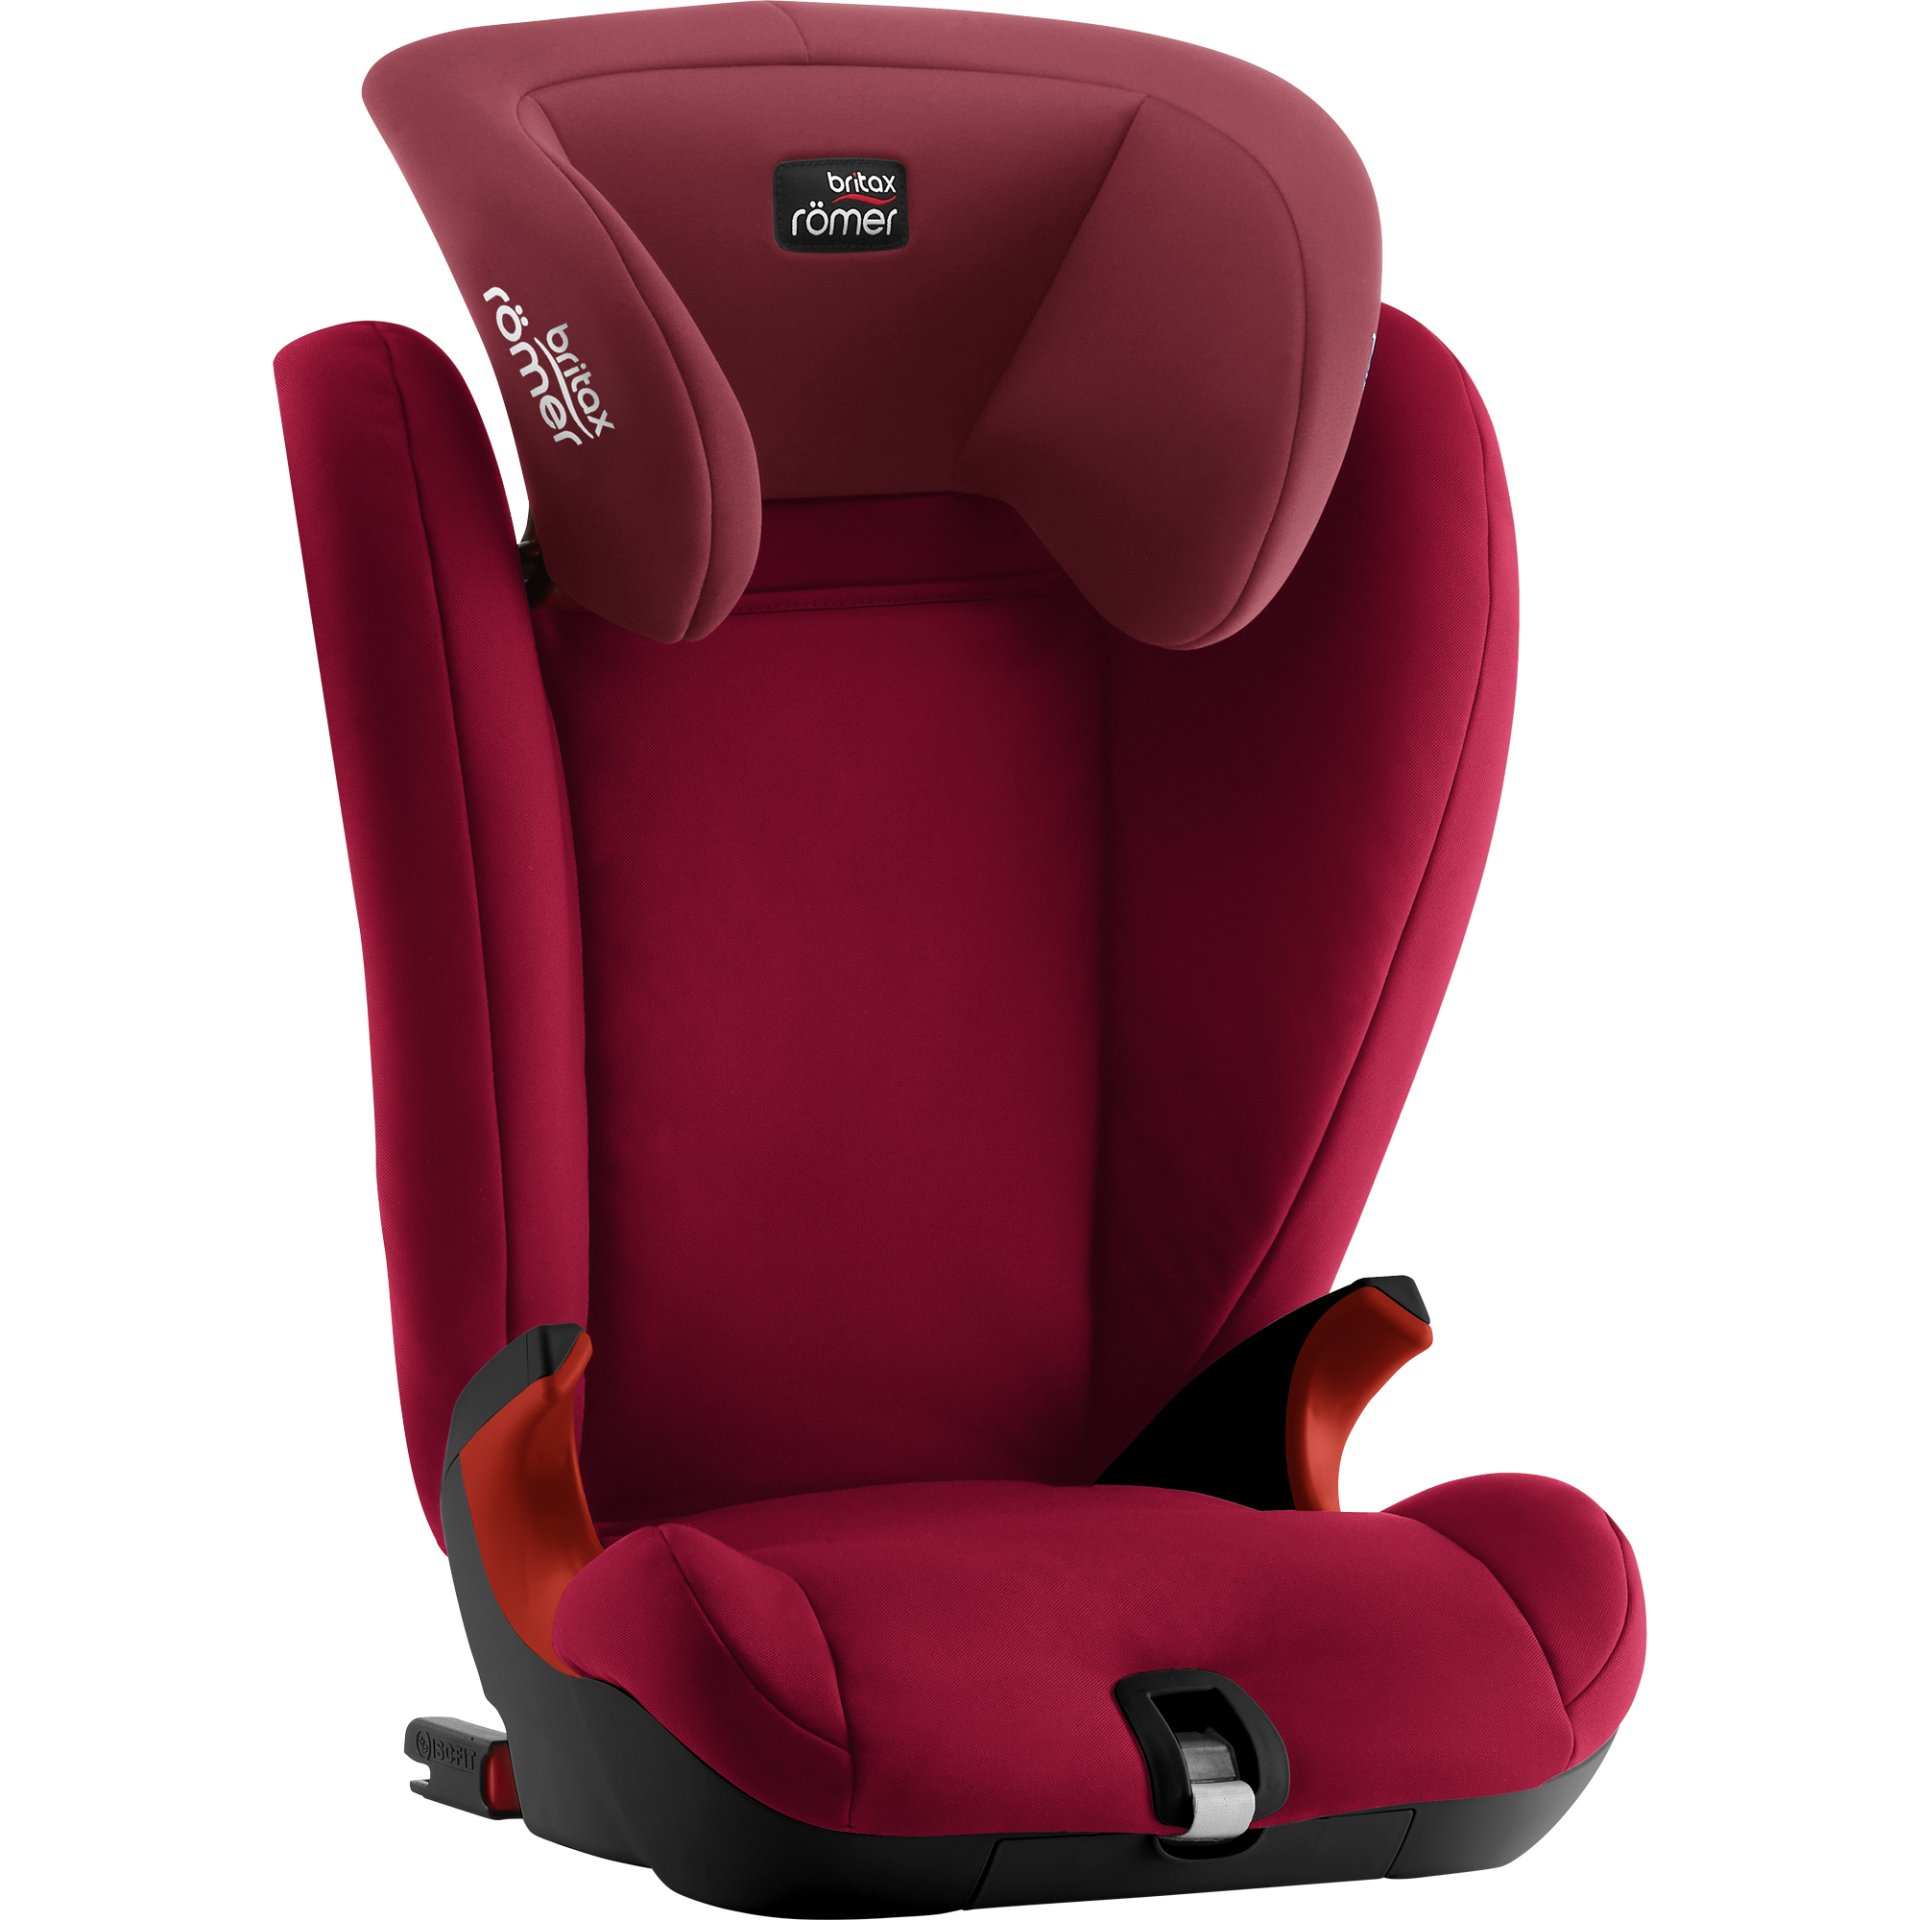 britax r mer kindersitz kidfix sl black series 2018 flame red buy at kidsroom car seats. Black Bedroom Furniture Sets. Home Design Ideas